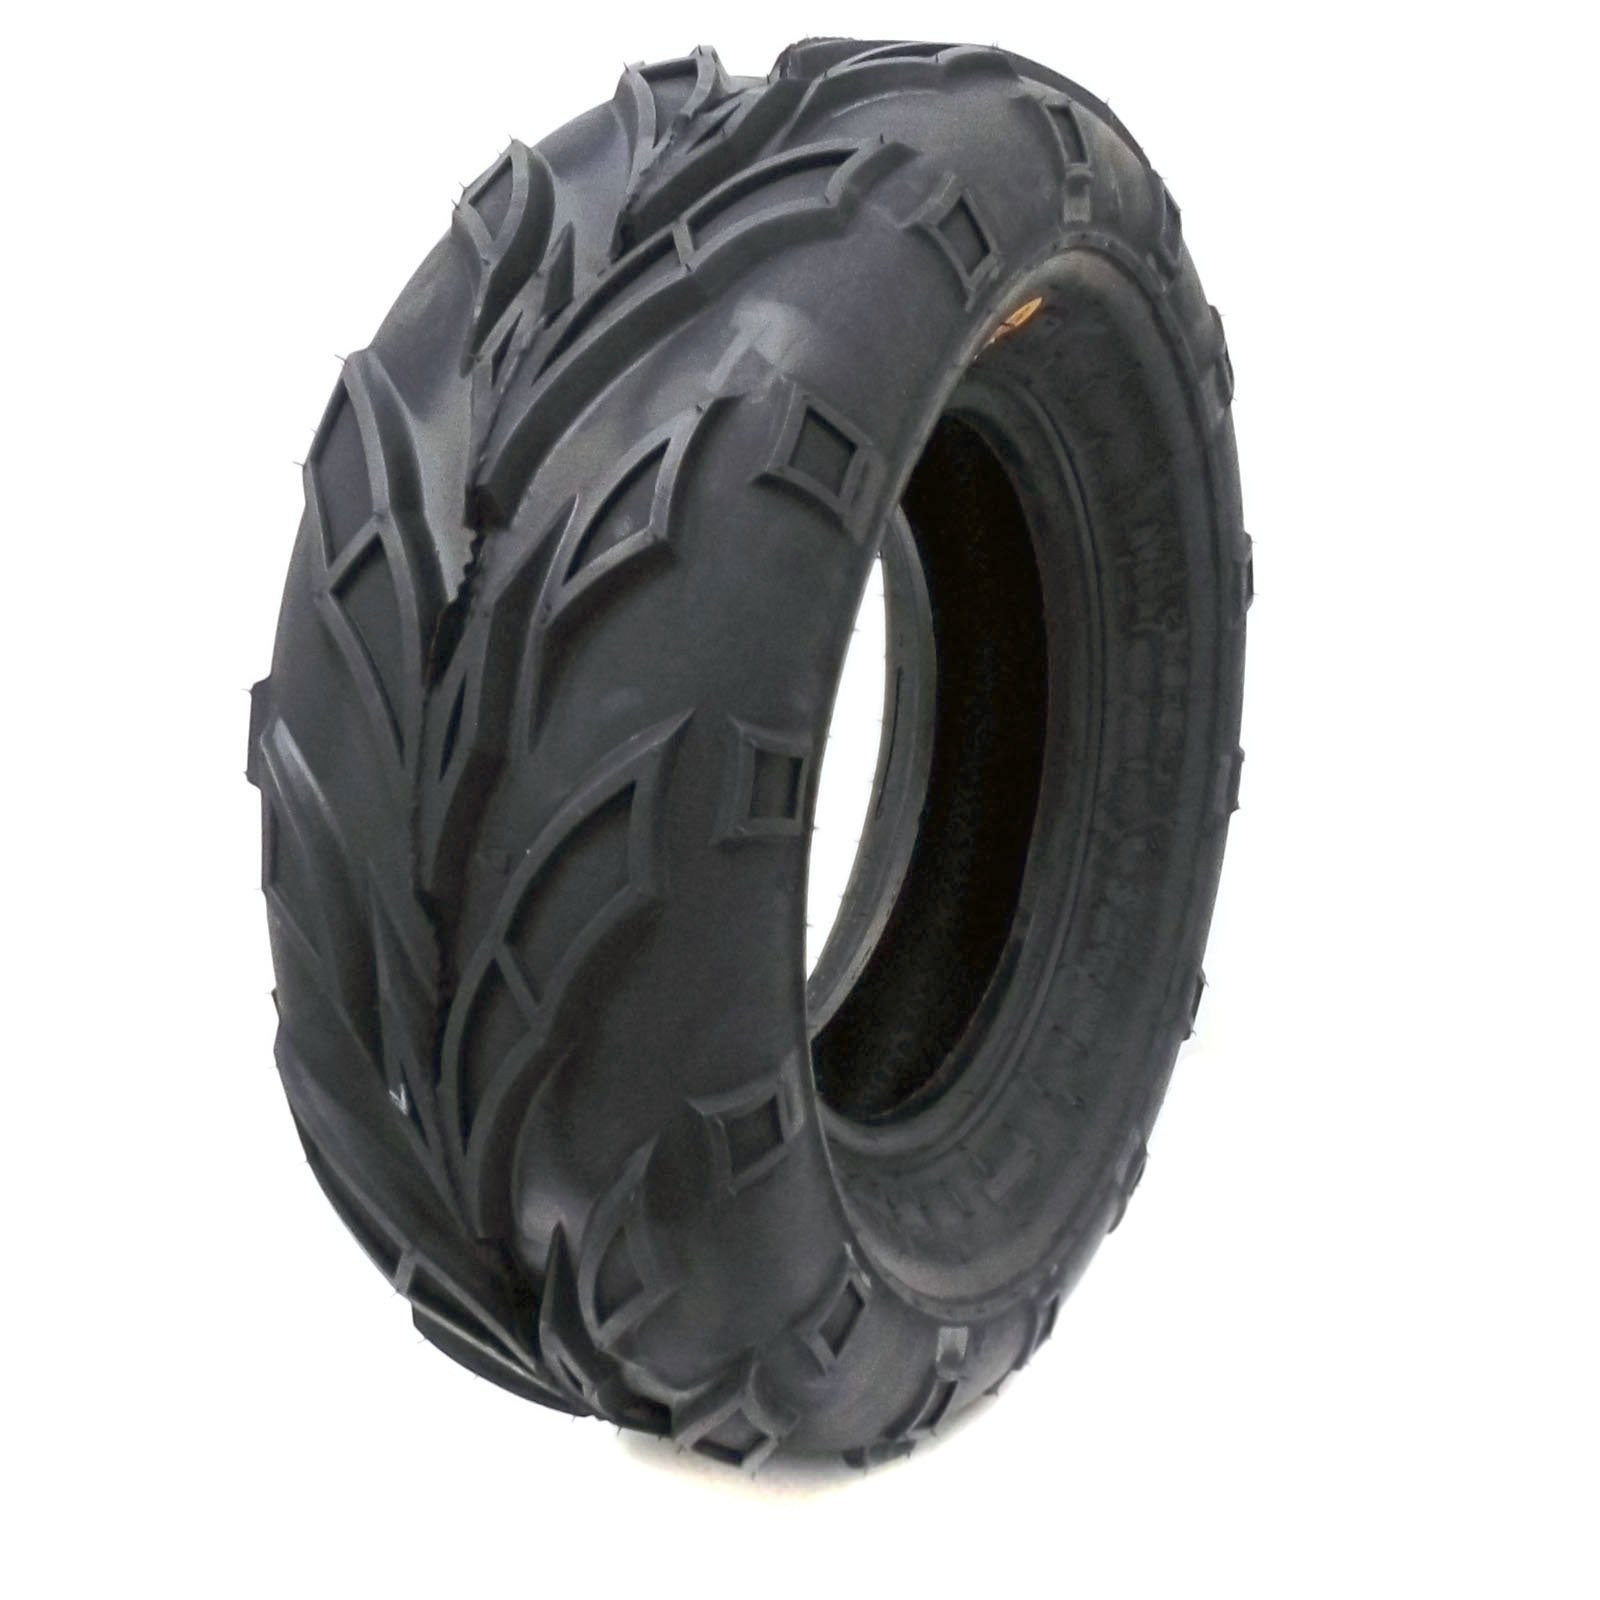 SET OF TWO: ATV Tubeless Tire 21x7-10 (175/80-10) Front or Rear All Terrain ATV UTV Go Kart - P133 by MMG (Image #2)